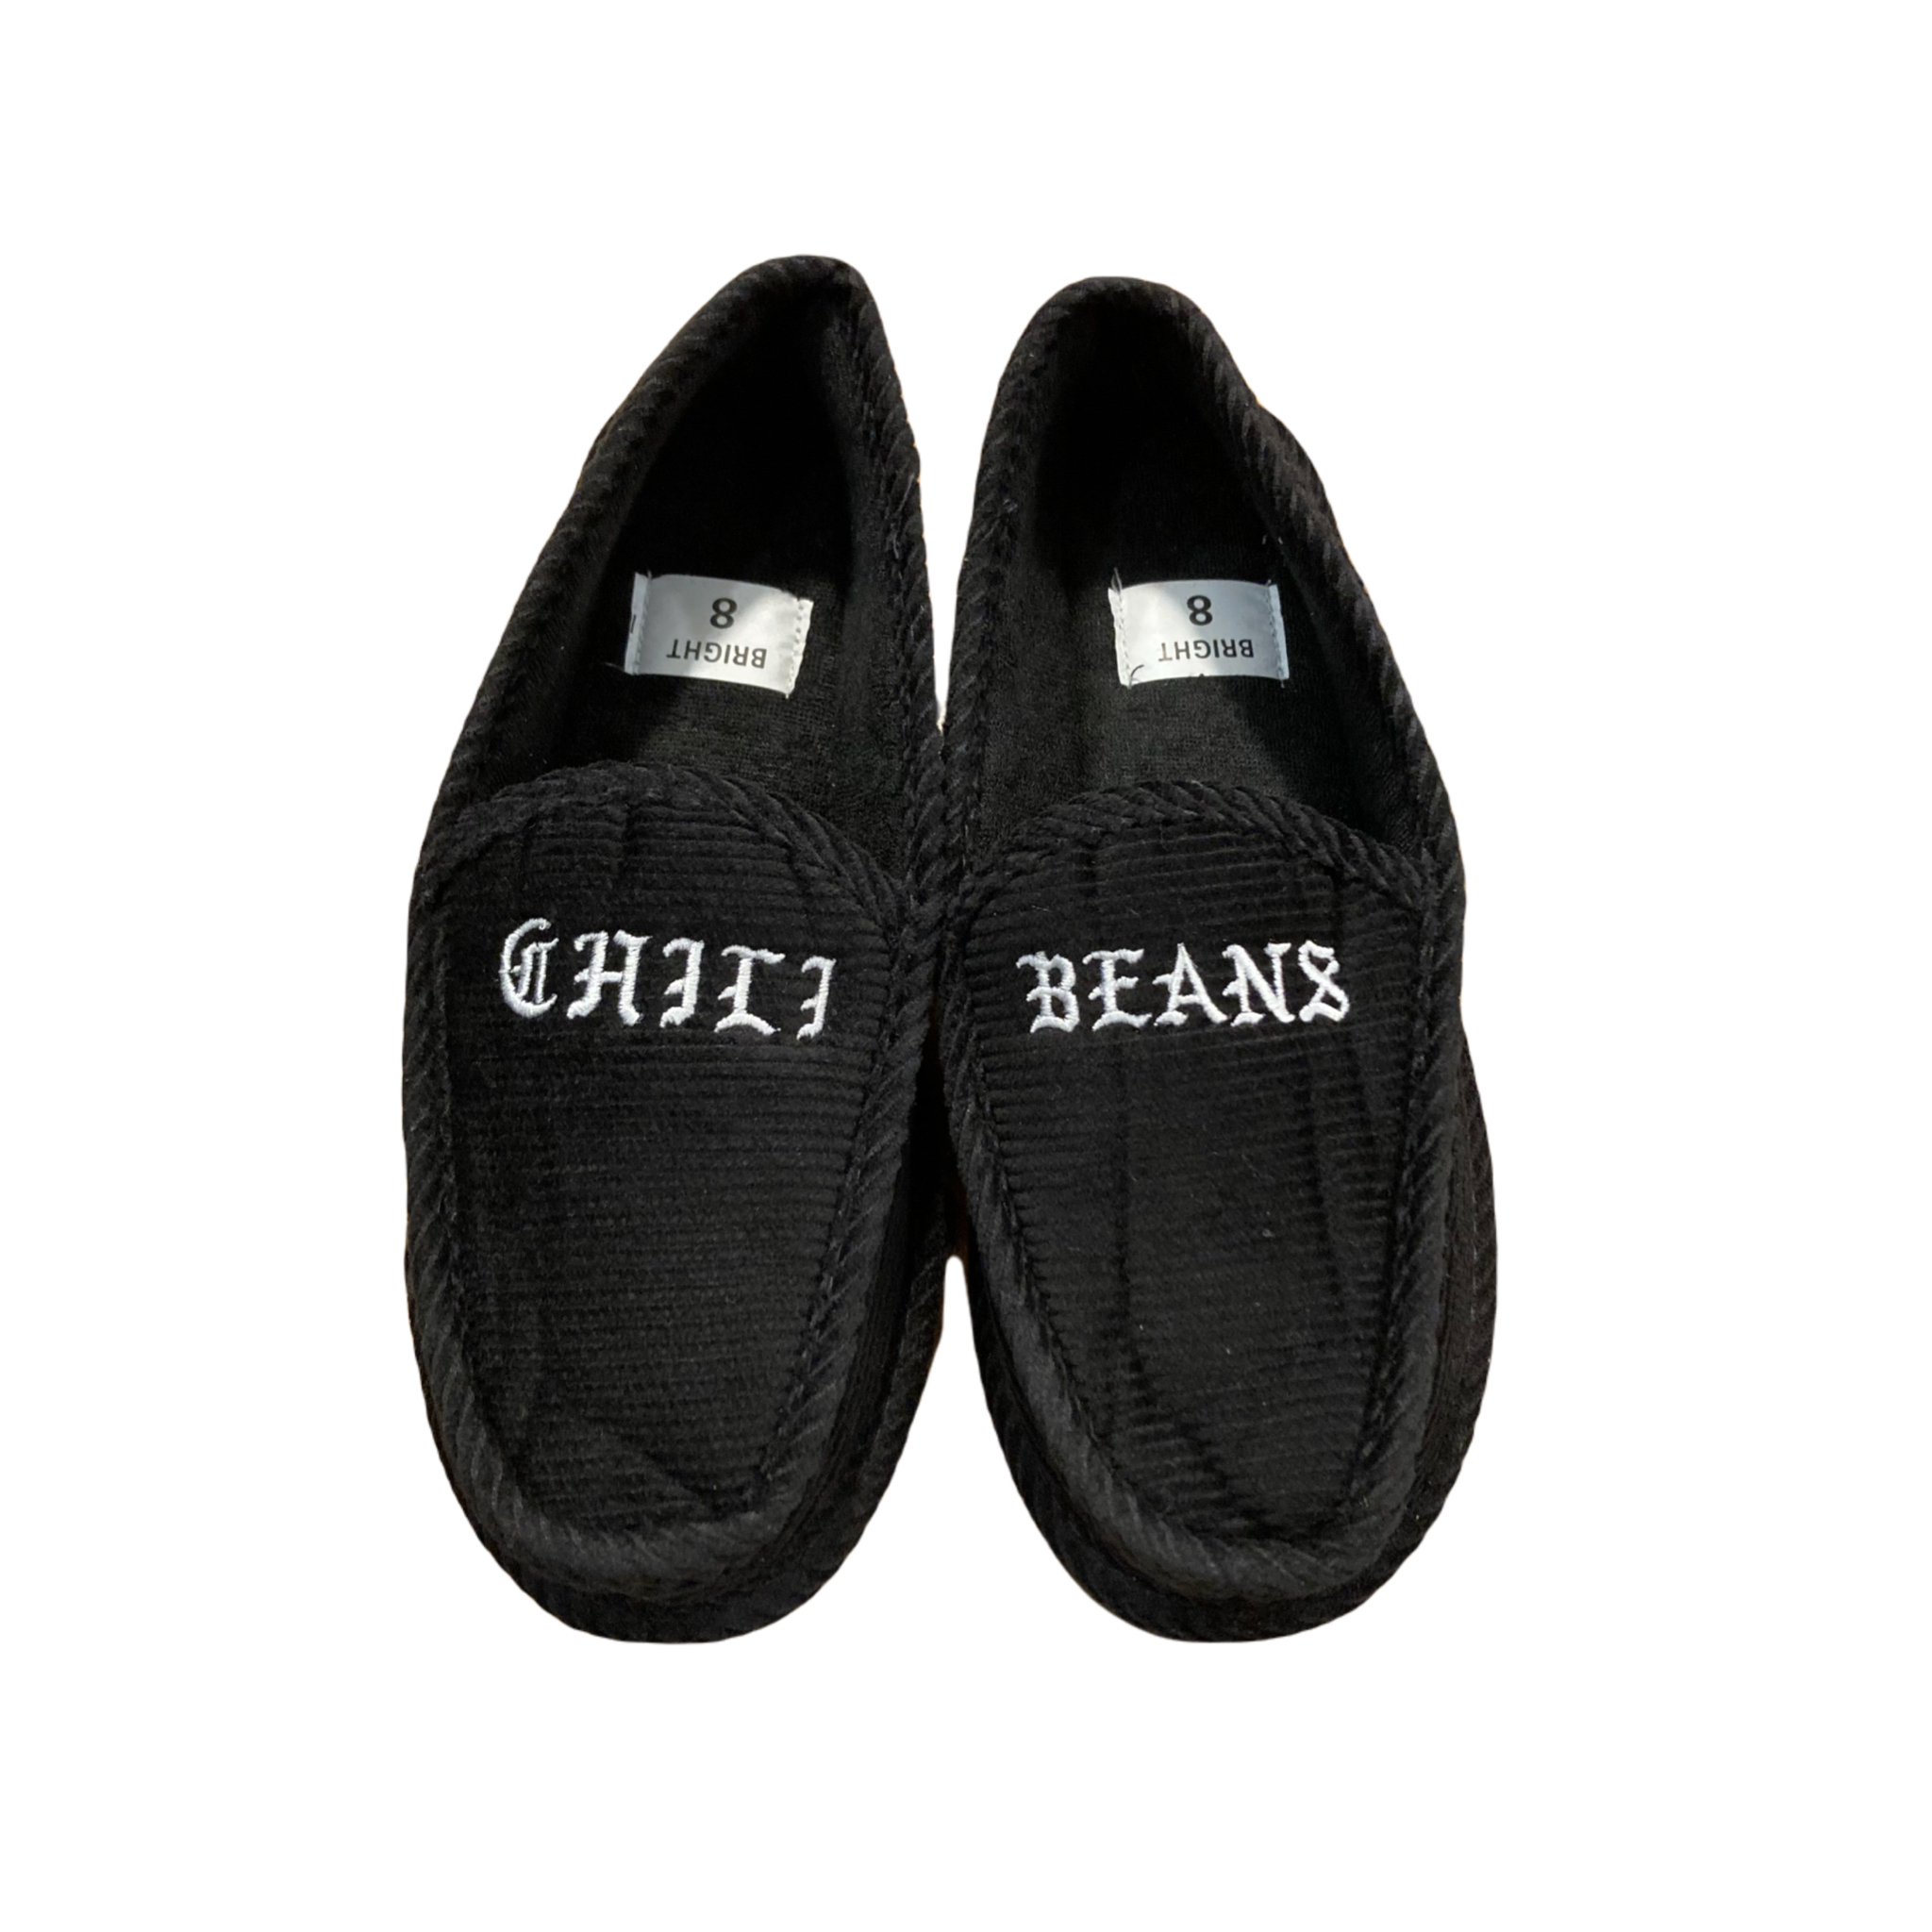 CHILI BEANS #Corduroy House Shoes